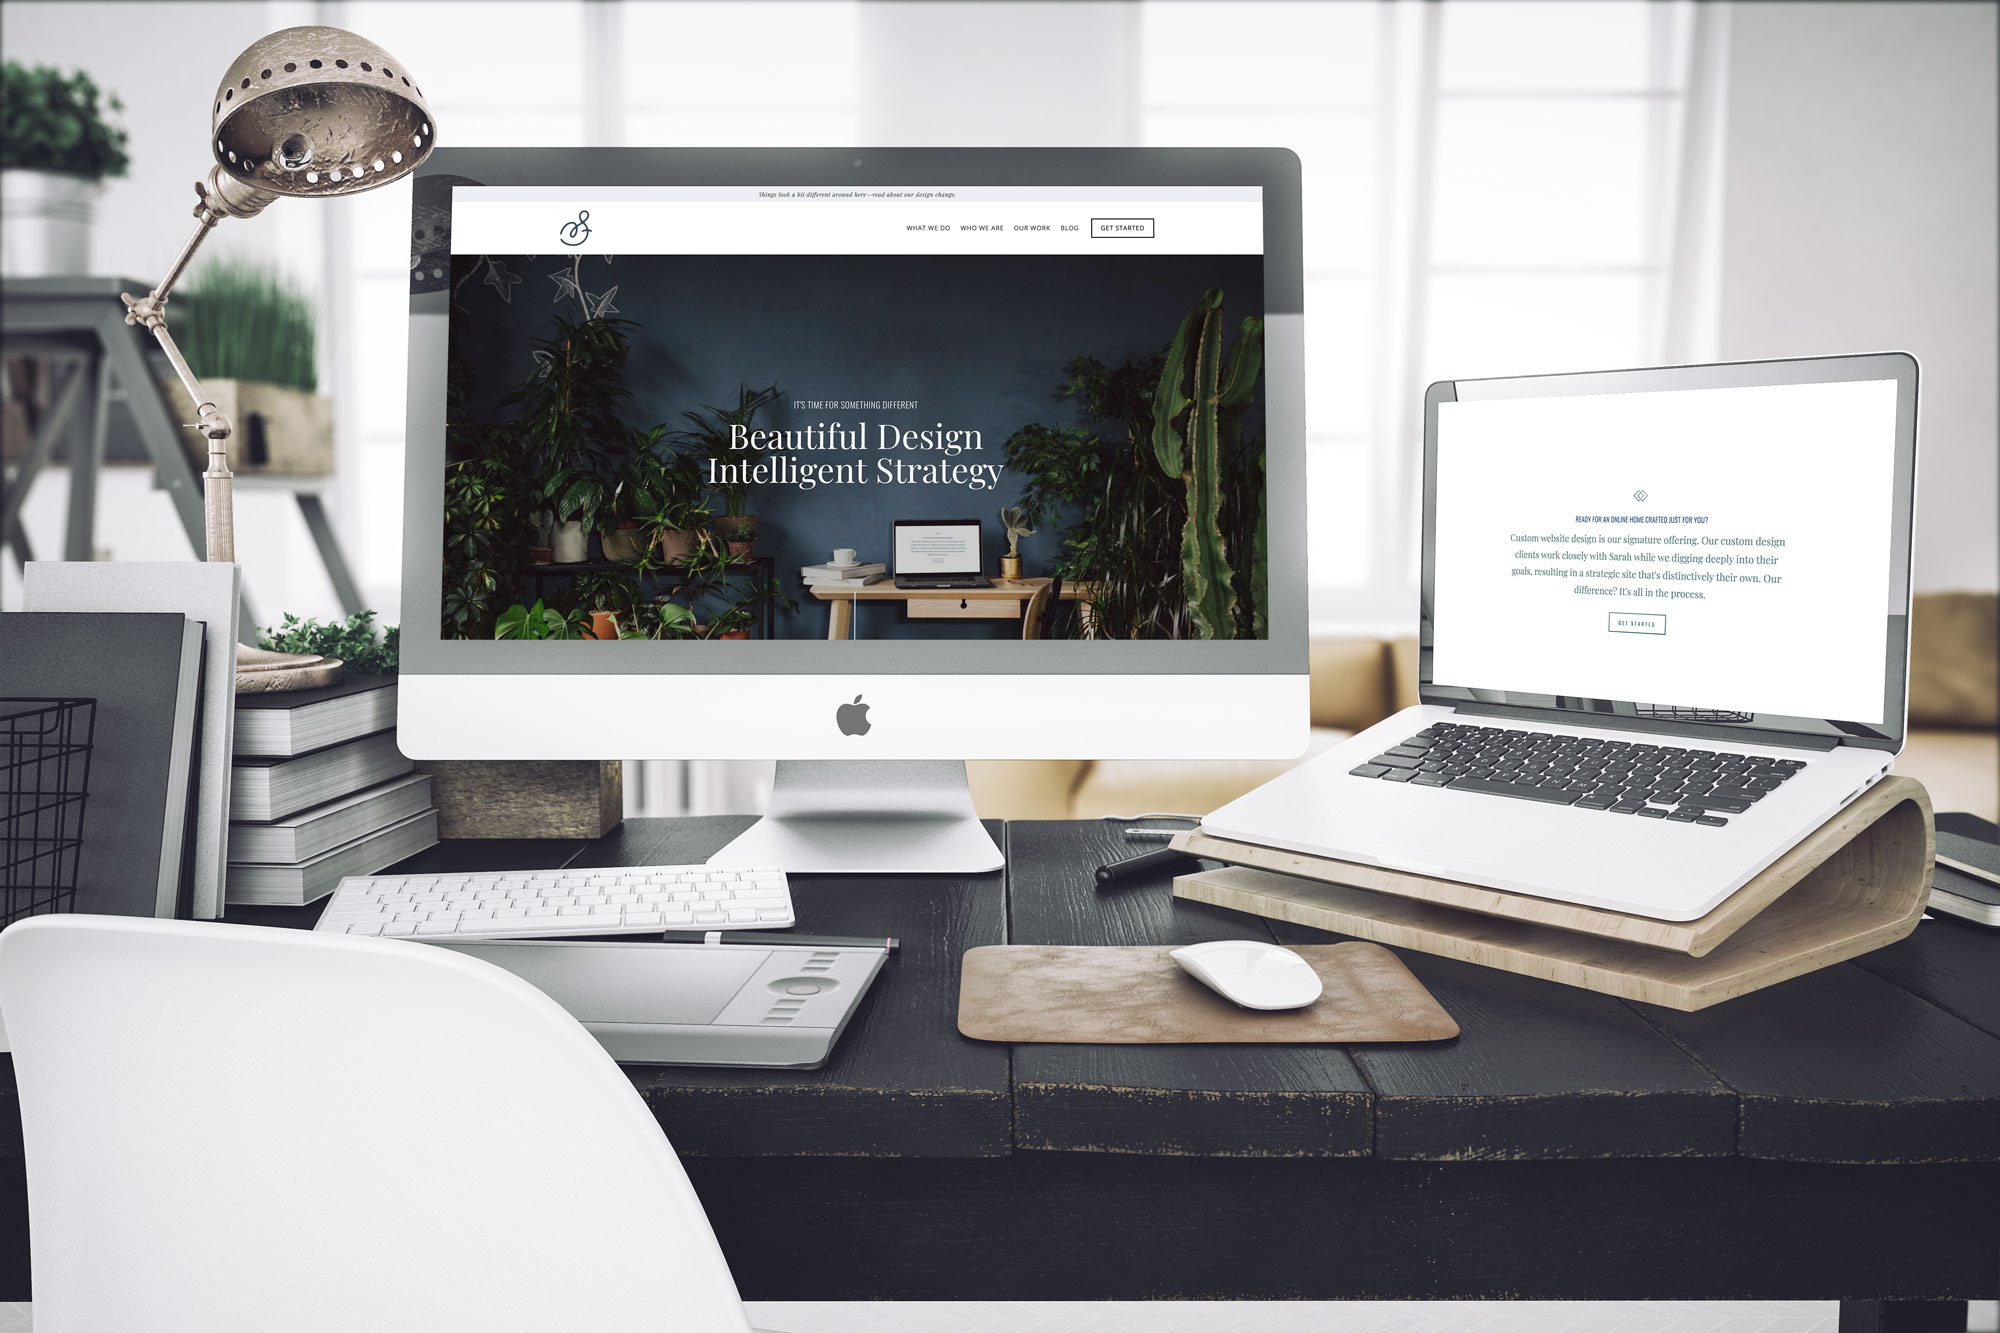 A New Squarespace Website for Sarah Moon + Co